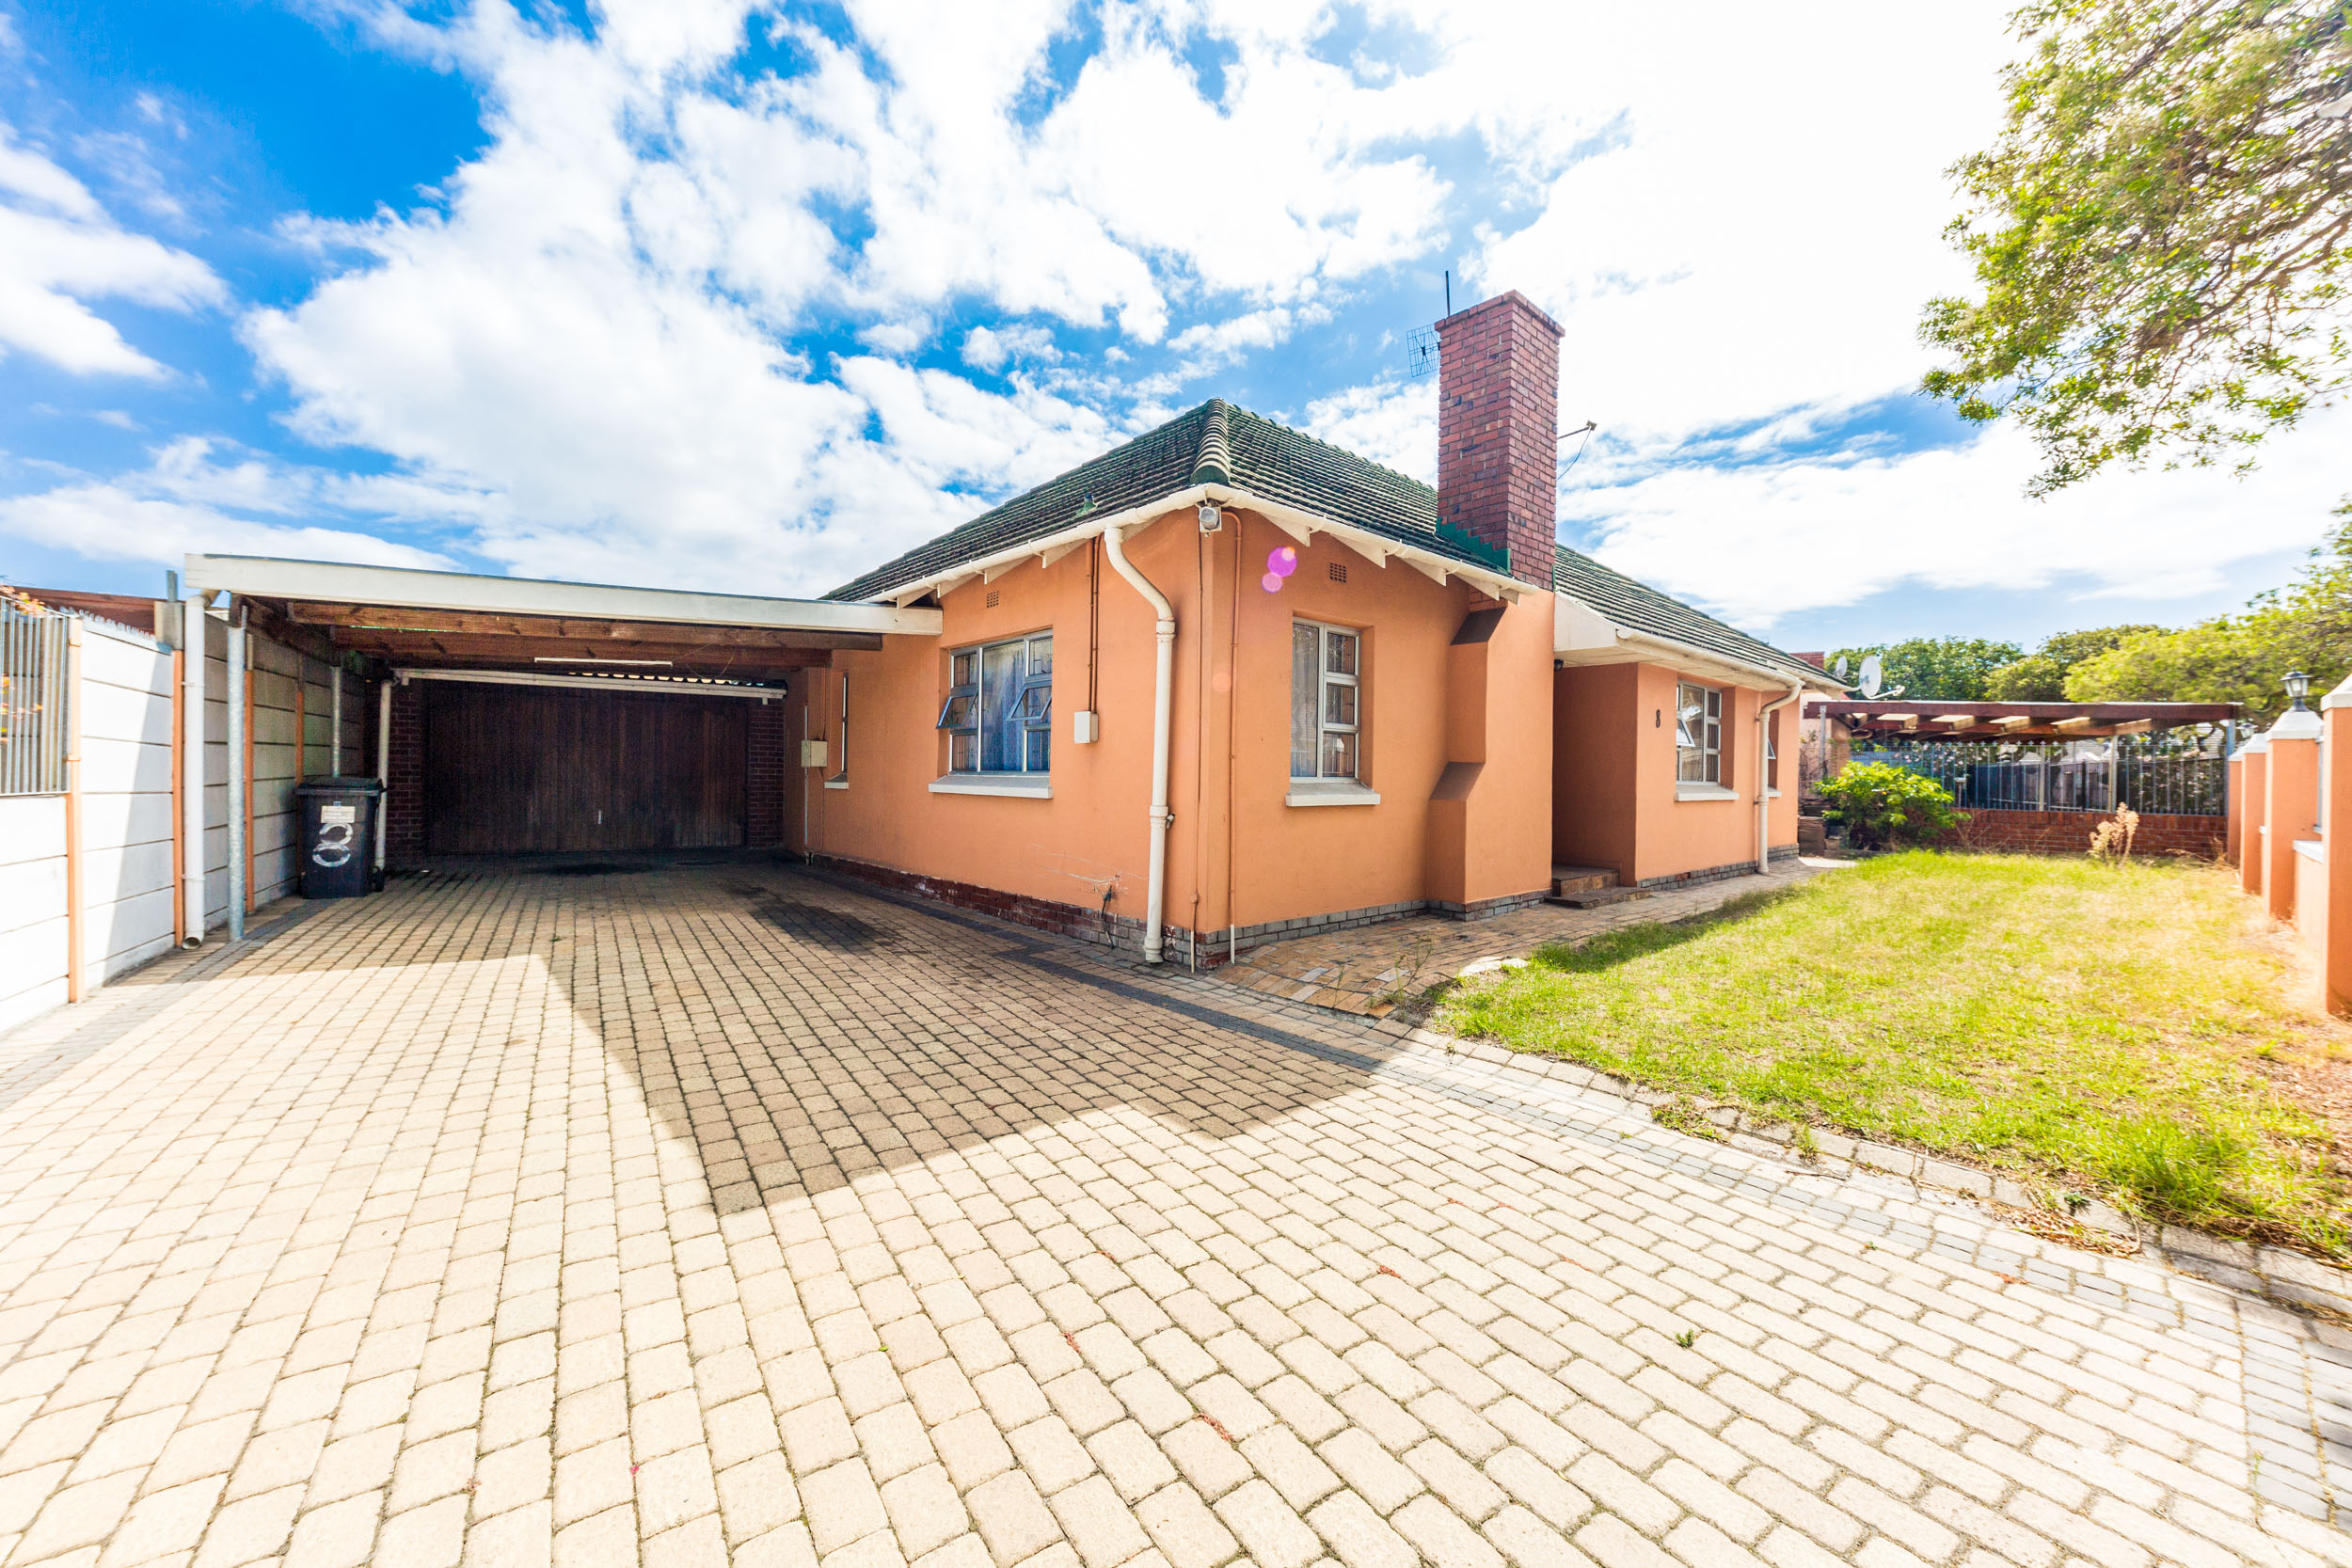 4 Bedroom House for sale in Thornton LH-9126 : photo#1